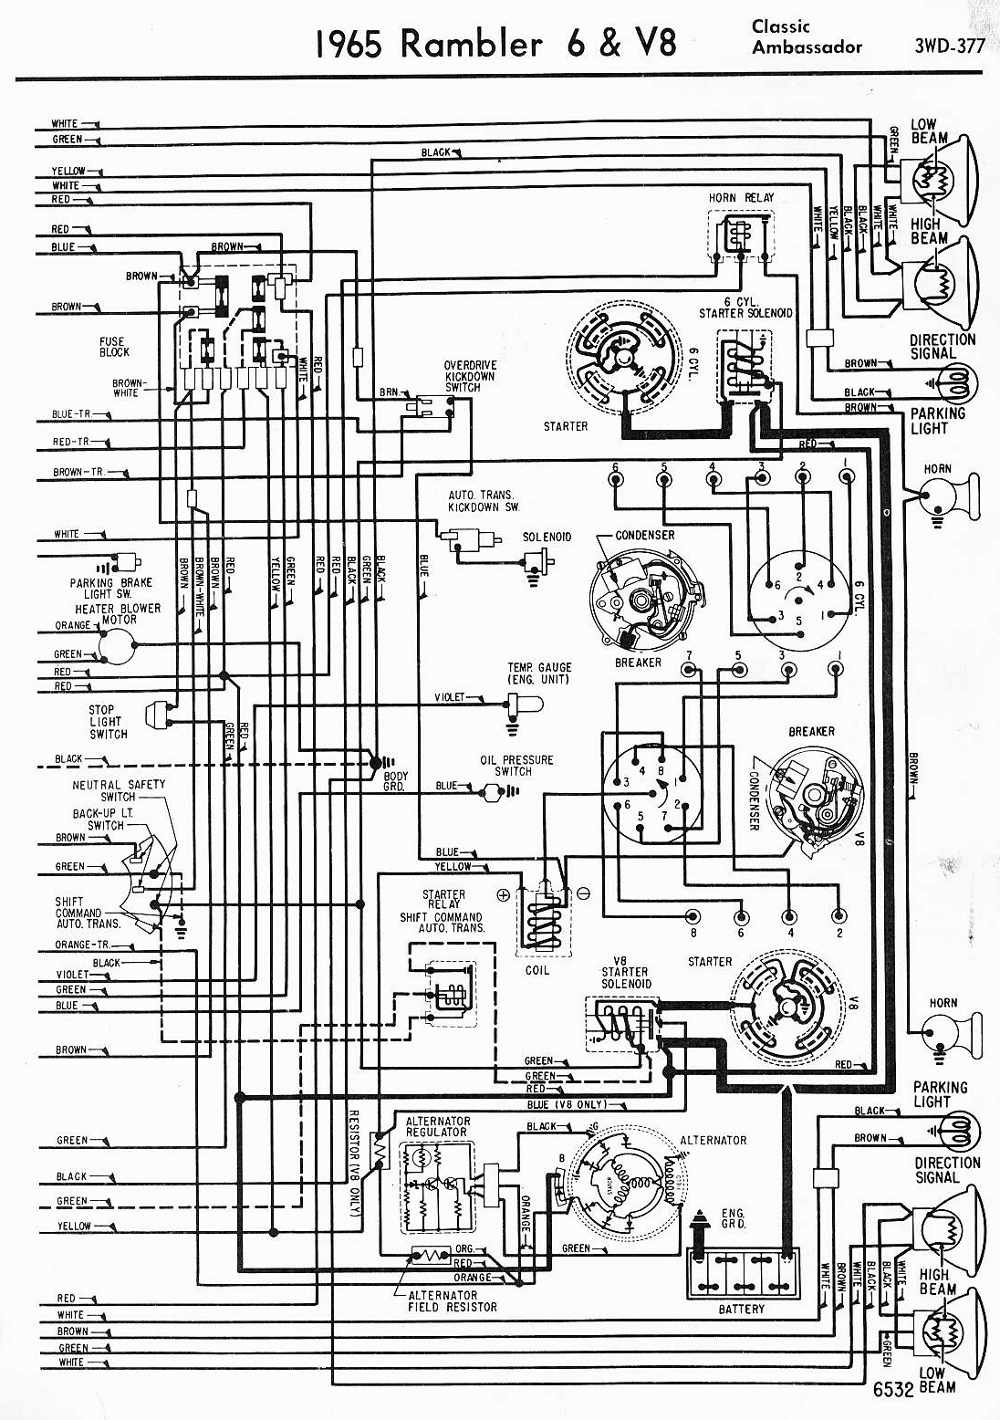 Transit Connect Tow Bar Wiring Diagram 38 Images Towing Ford Towbar Efcaviation Com Diagrams Of 1965 Amc Rambler 6 And V8 Classic Ambassador Part 2resized665